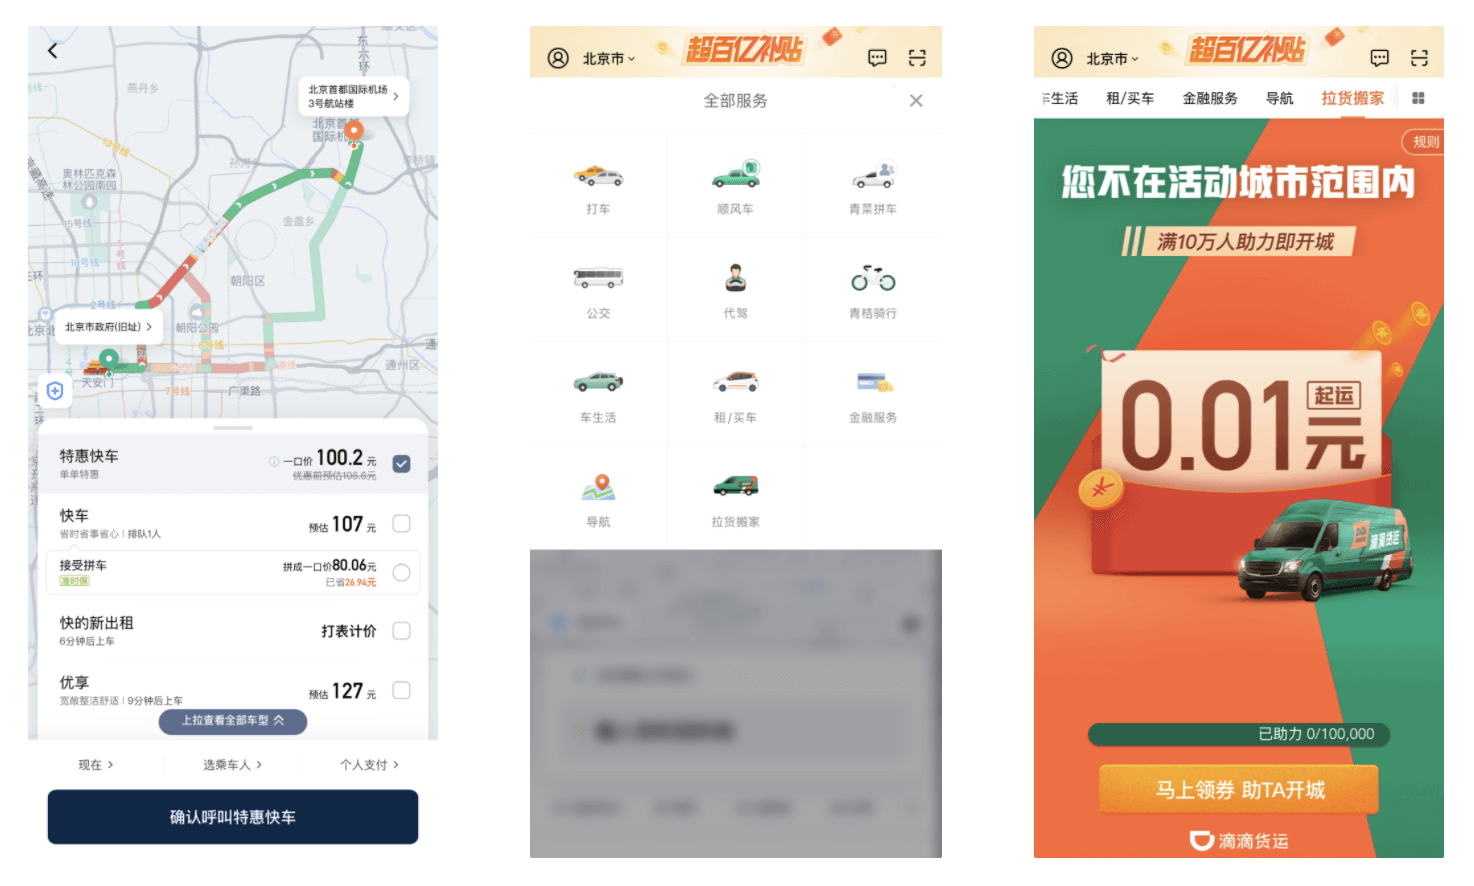 Three screenshots of Didi's app showing 1) the core ridehailing experience, 2) the range of trip options available on the Didi platform and 3) an ad for van rental through Didi